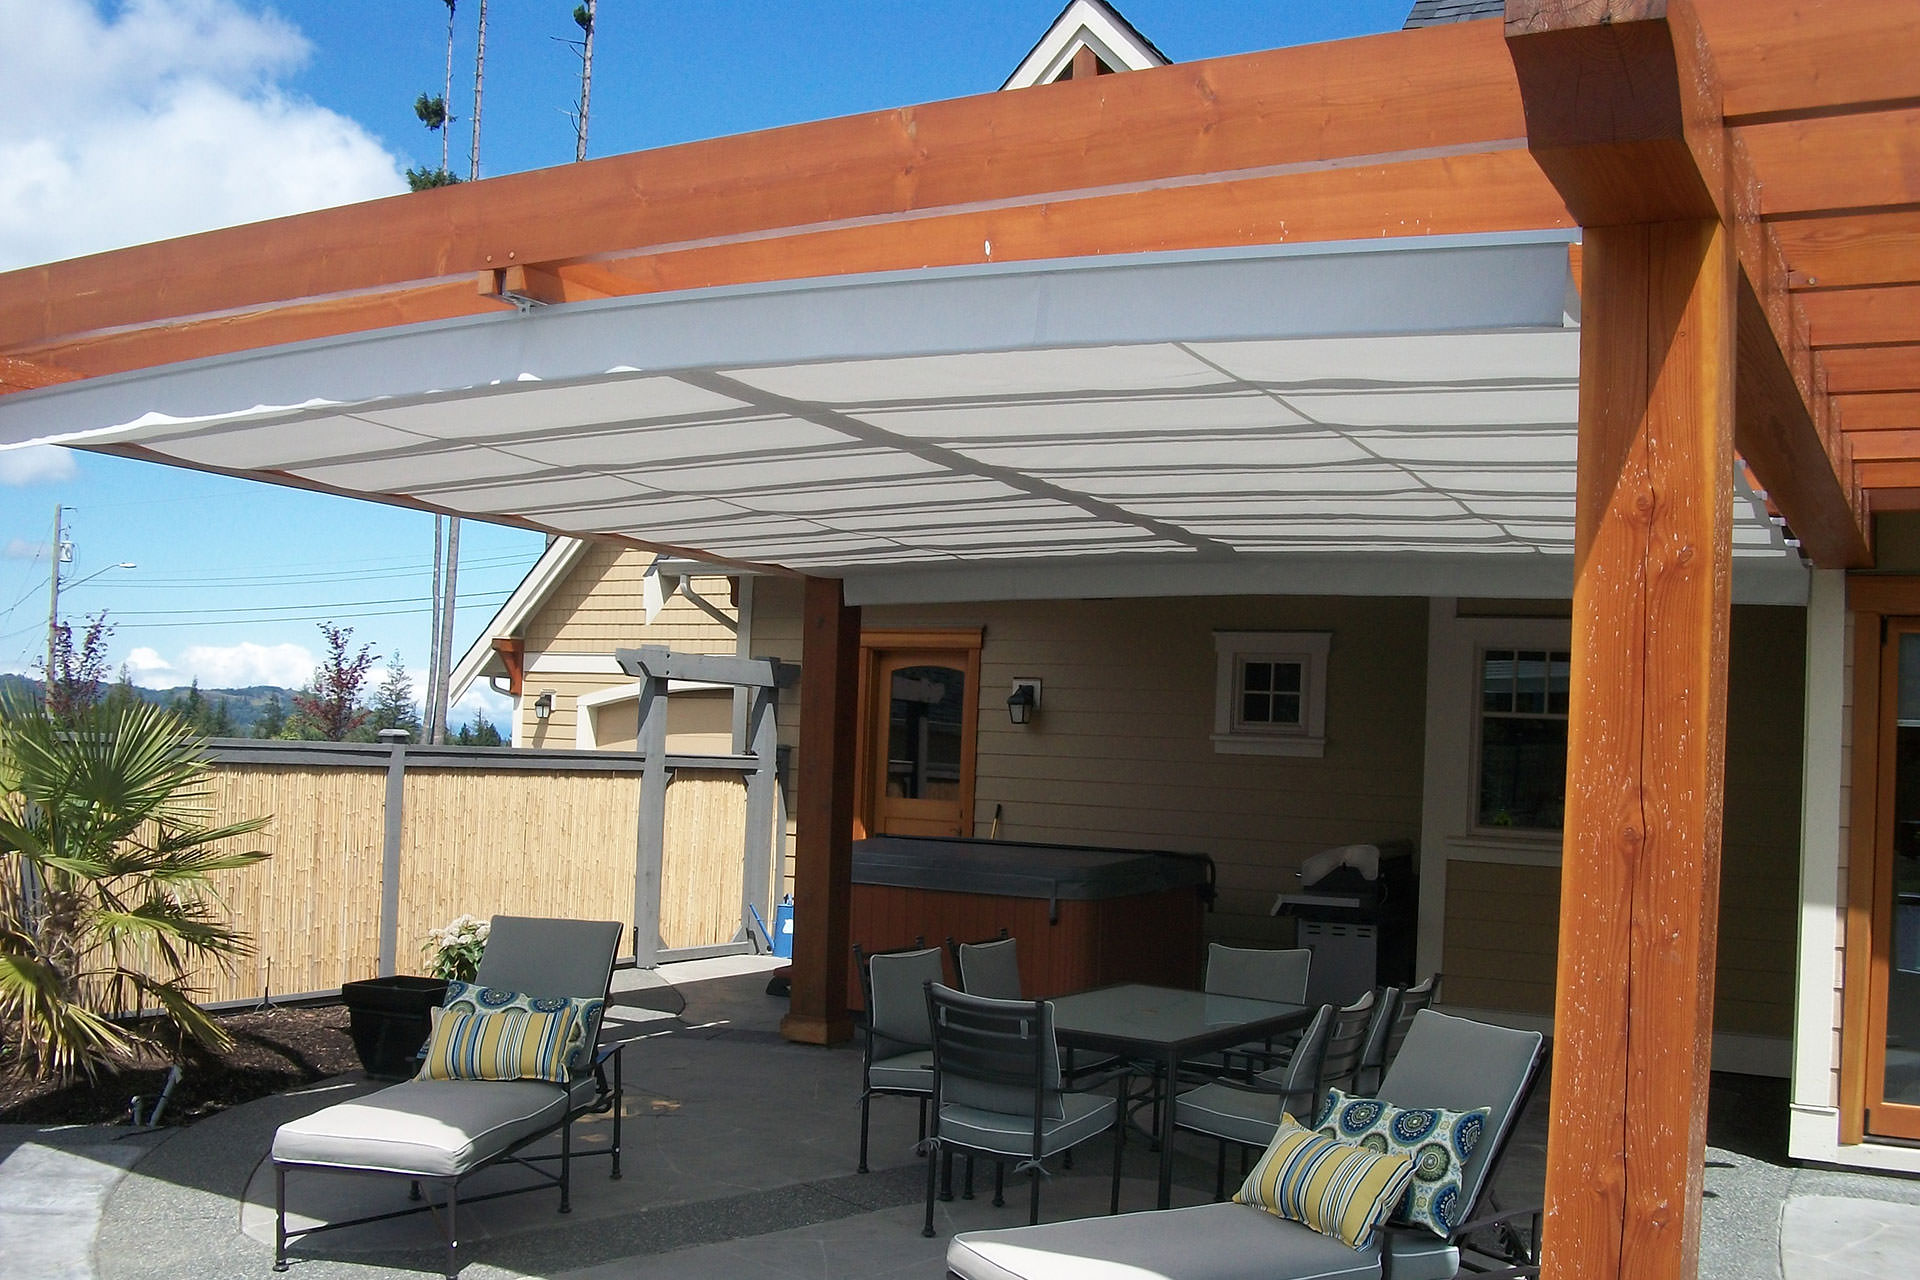 cover awning in gallery for shadefx outdoor patio retractable vancouver awnings decks canopies